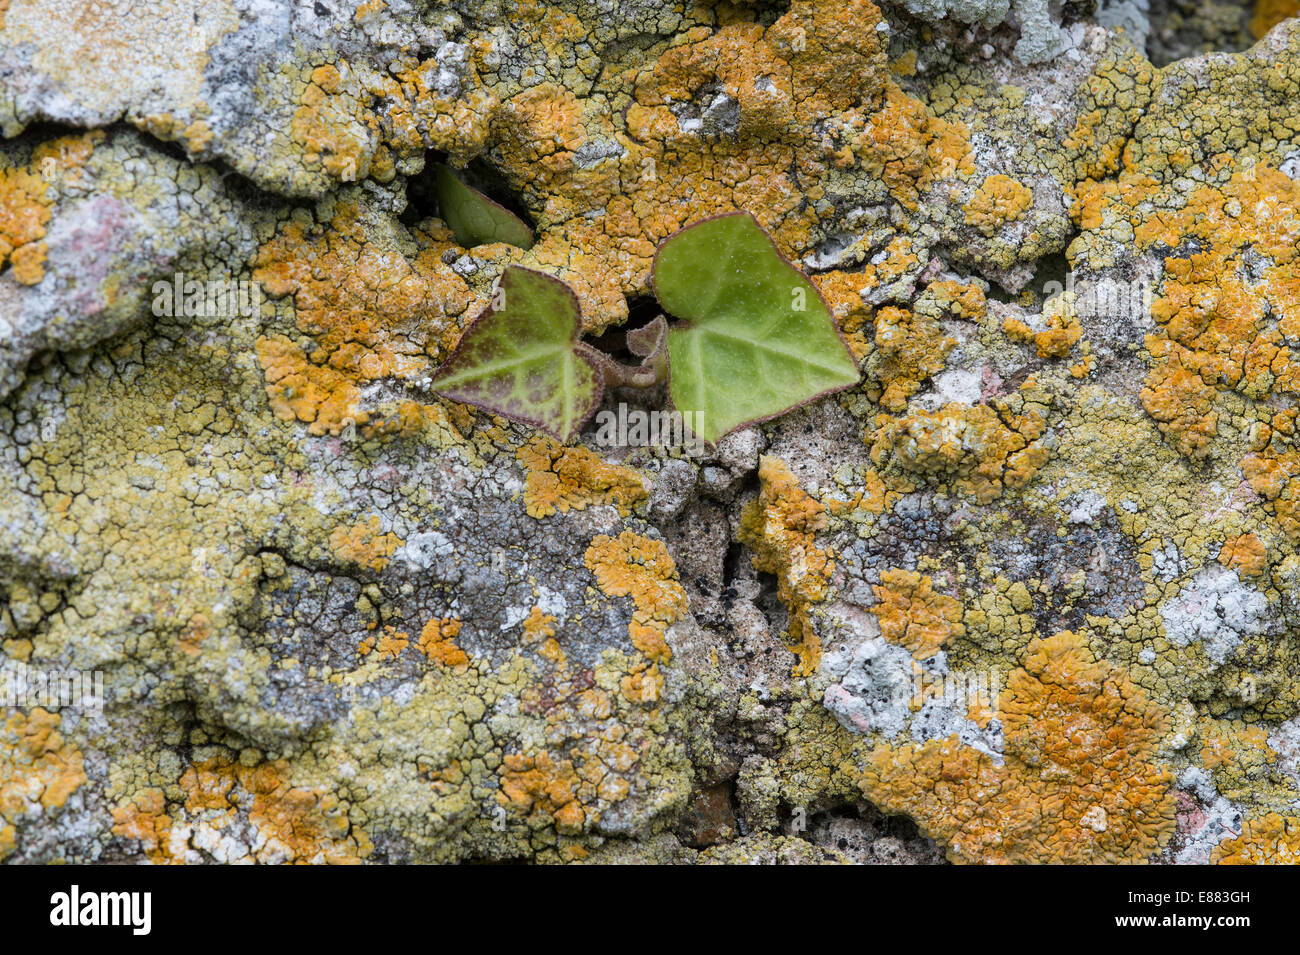 Xenthoria parietina lichen covering old building stone wall, new ivy growth Skomar Island Pembrokeshire Wales UK - Stock Image